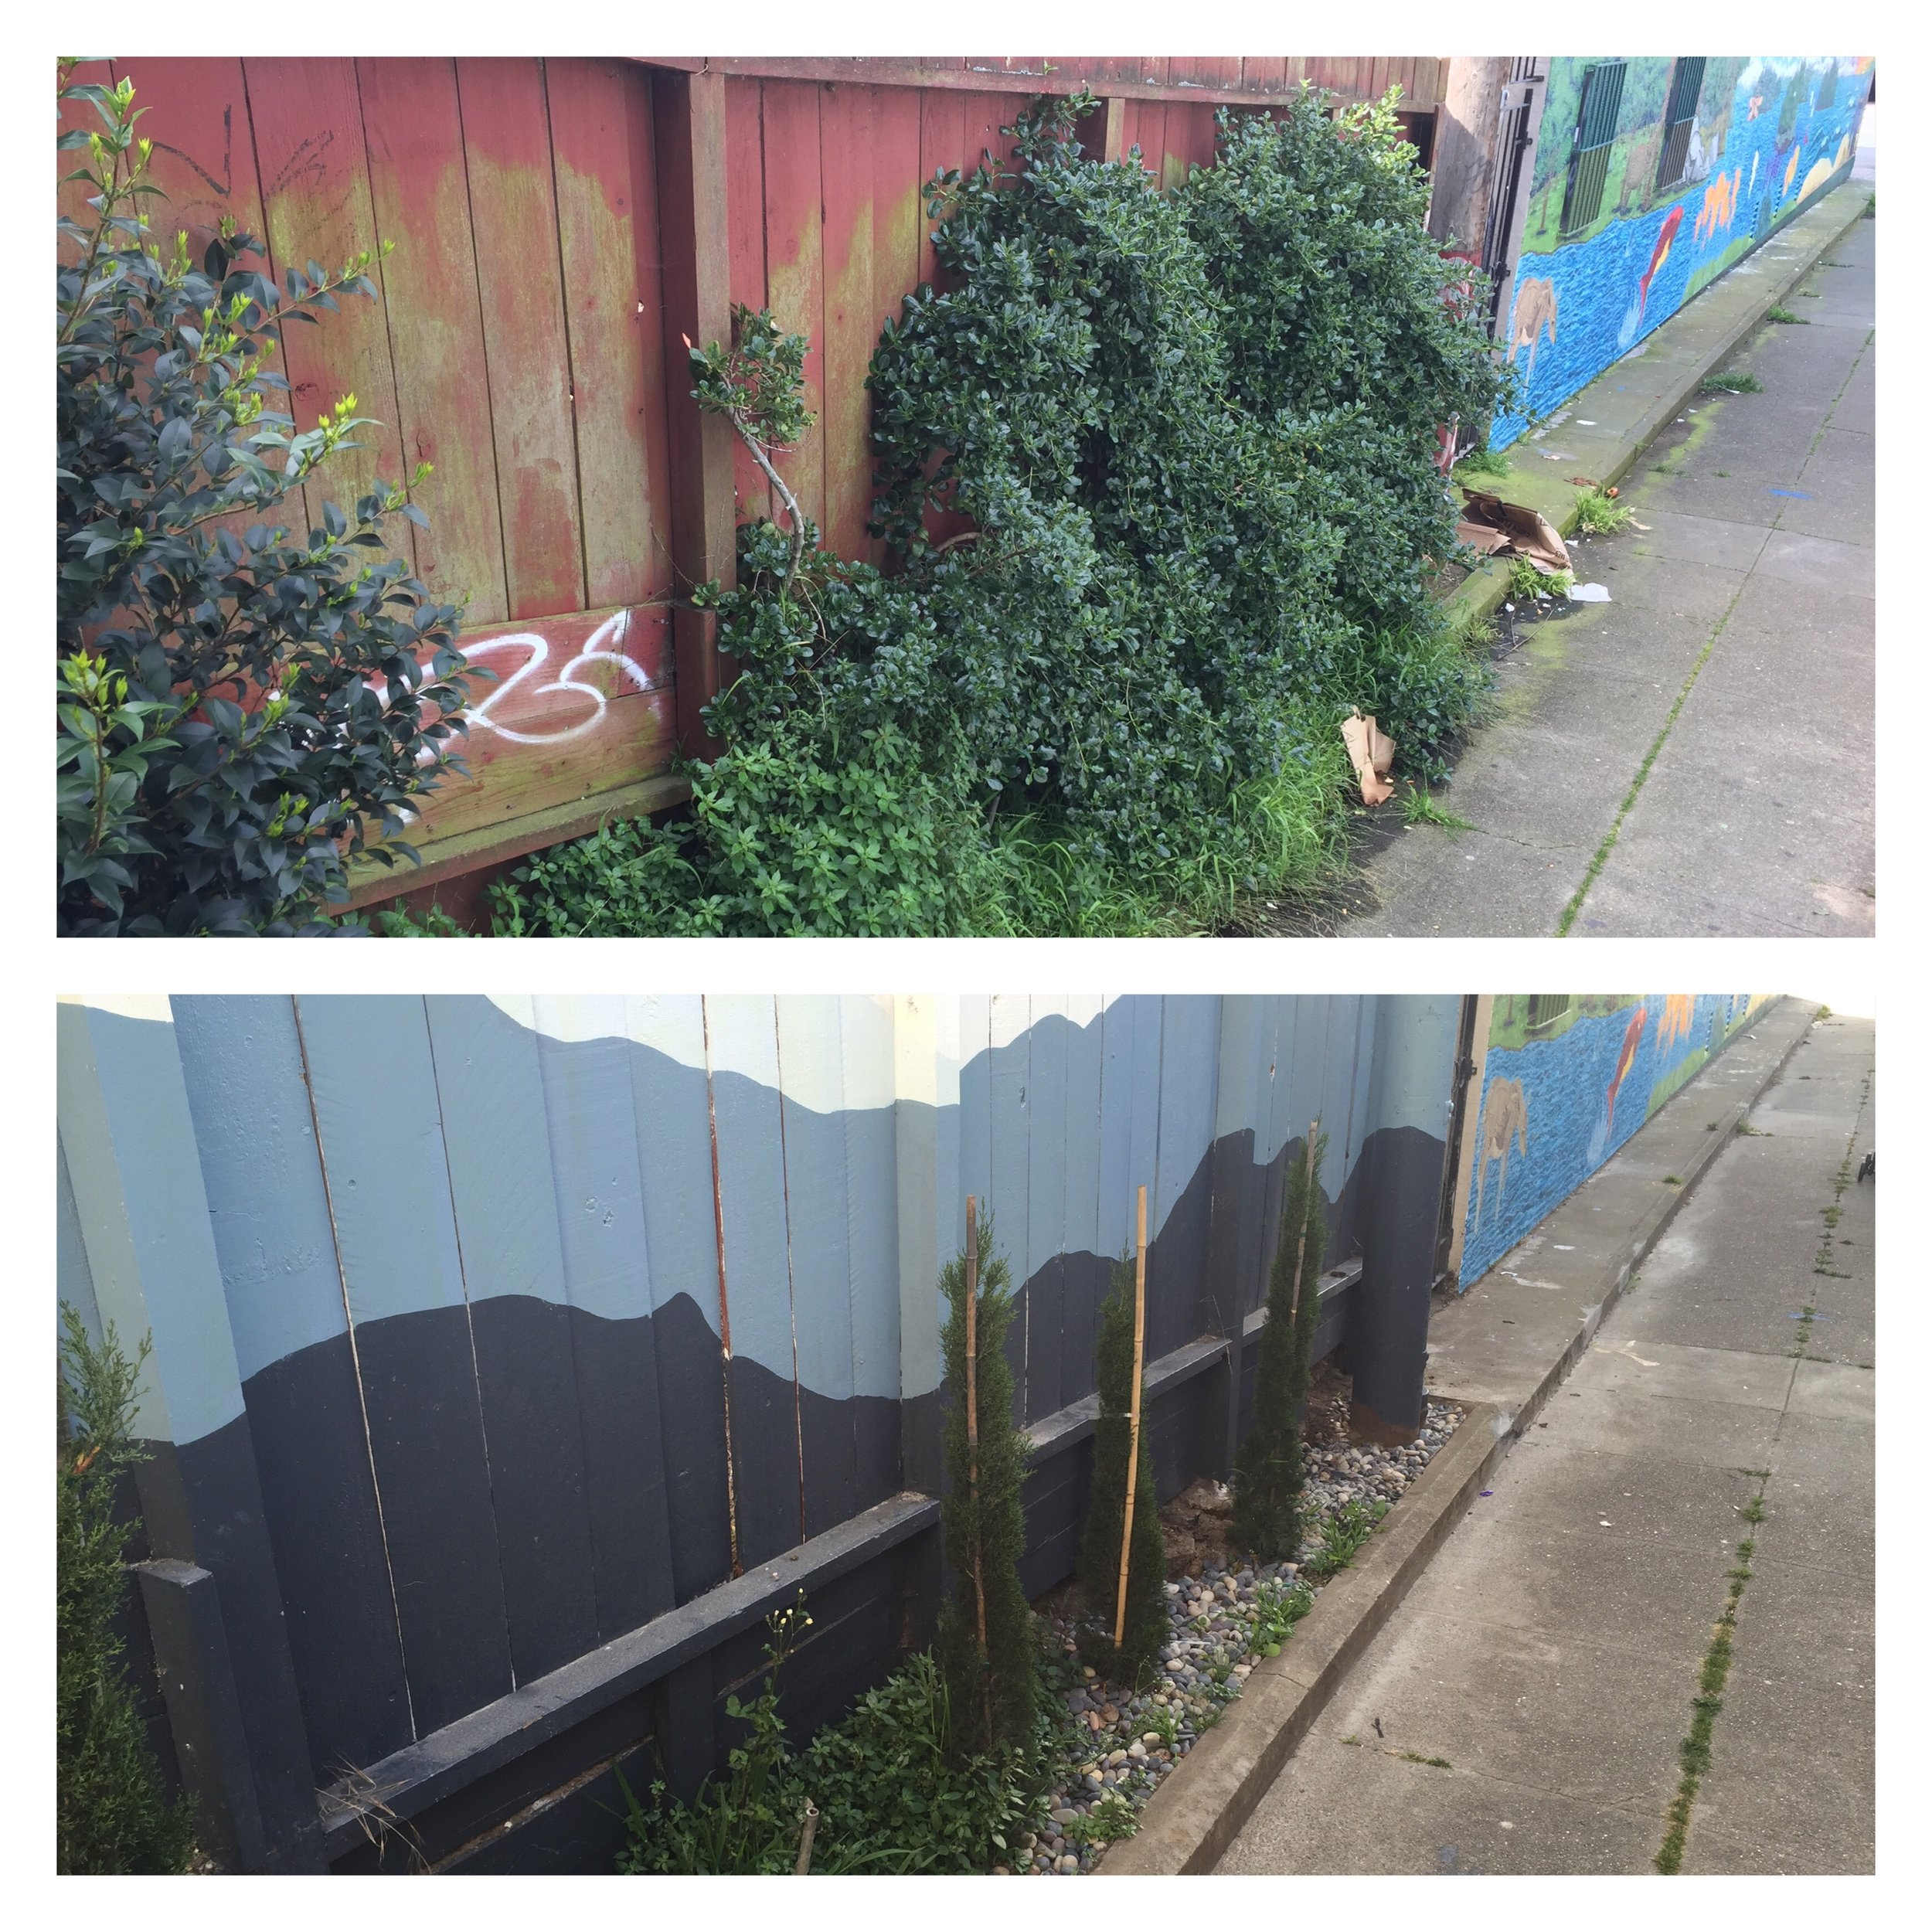 Kenny Alley south wall, before and after the addition of Italian Cypress, river rock and mountain mural, April 2016